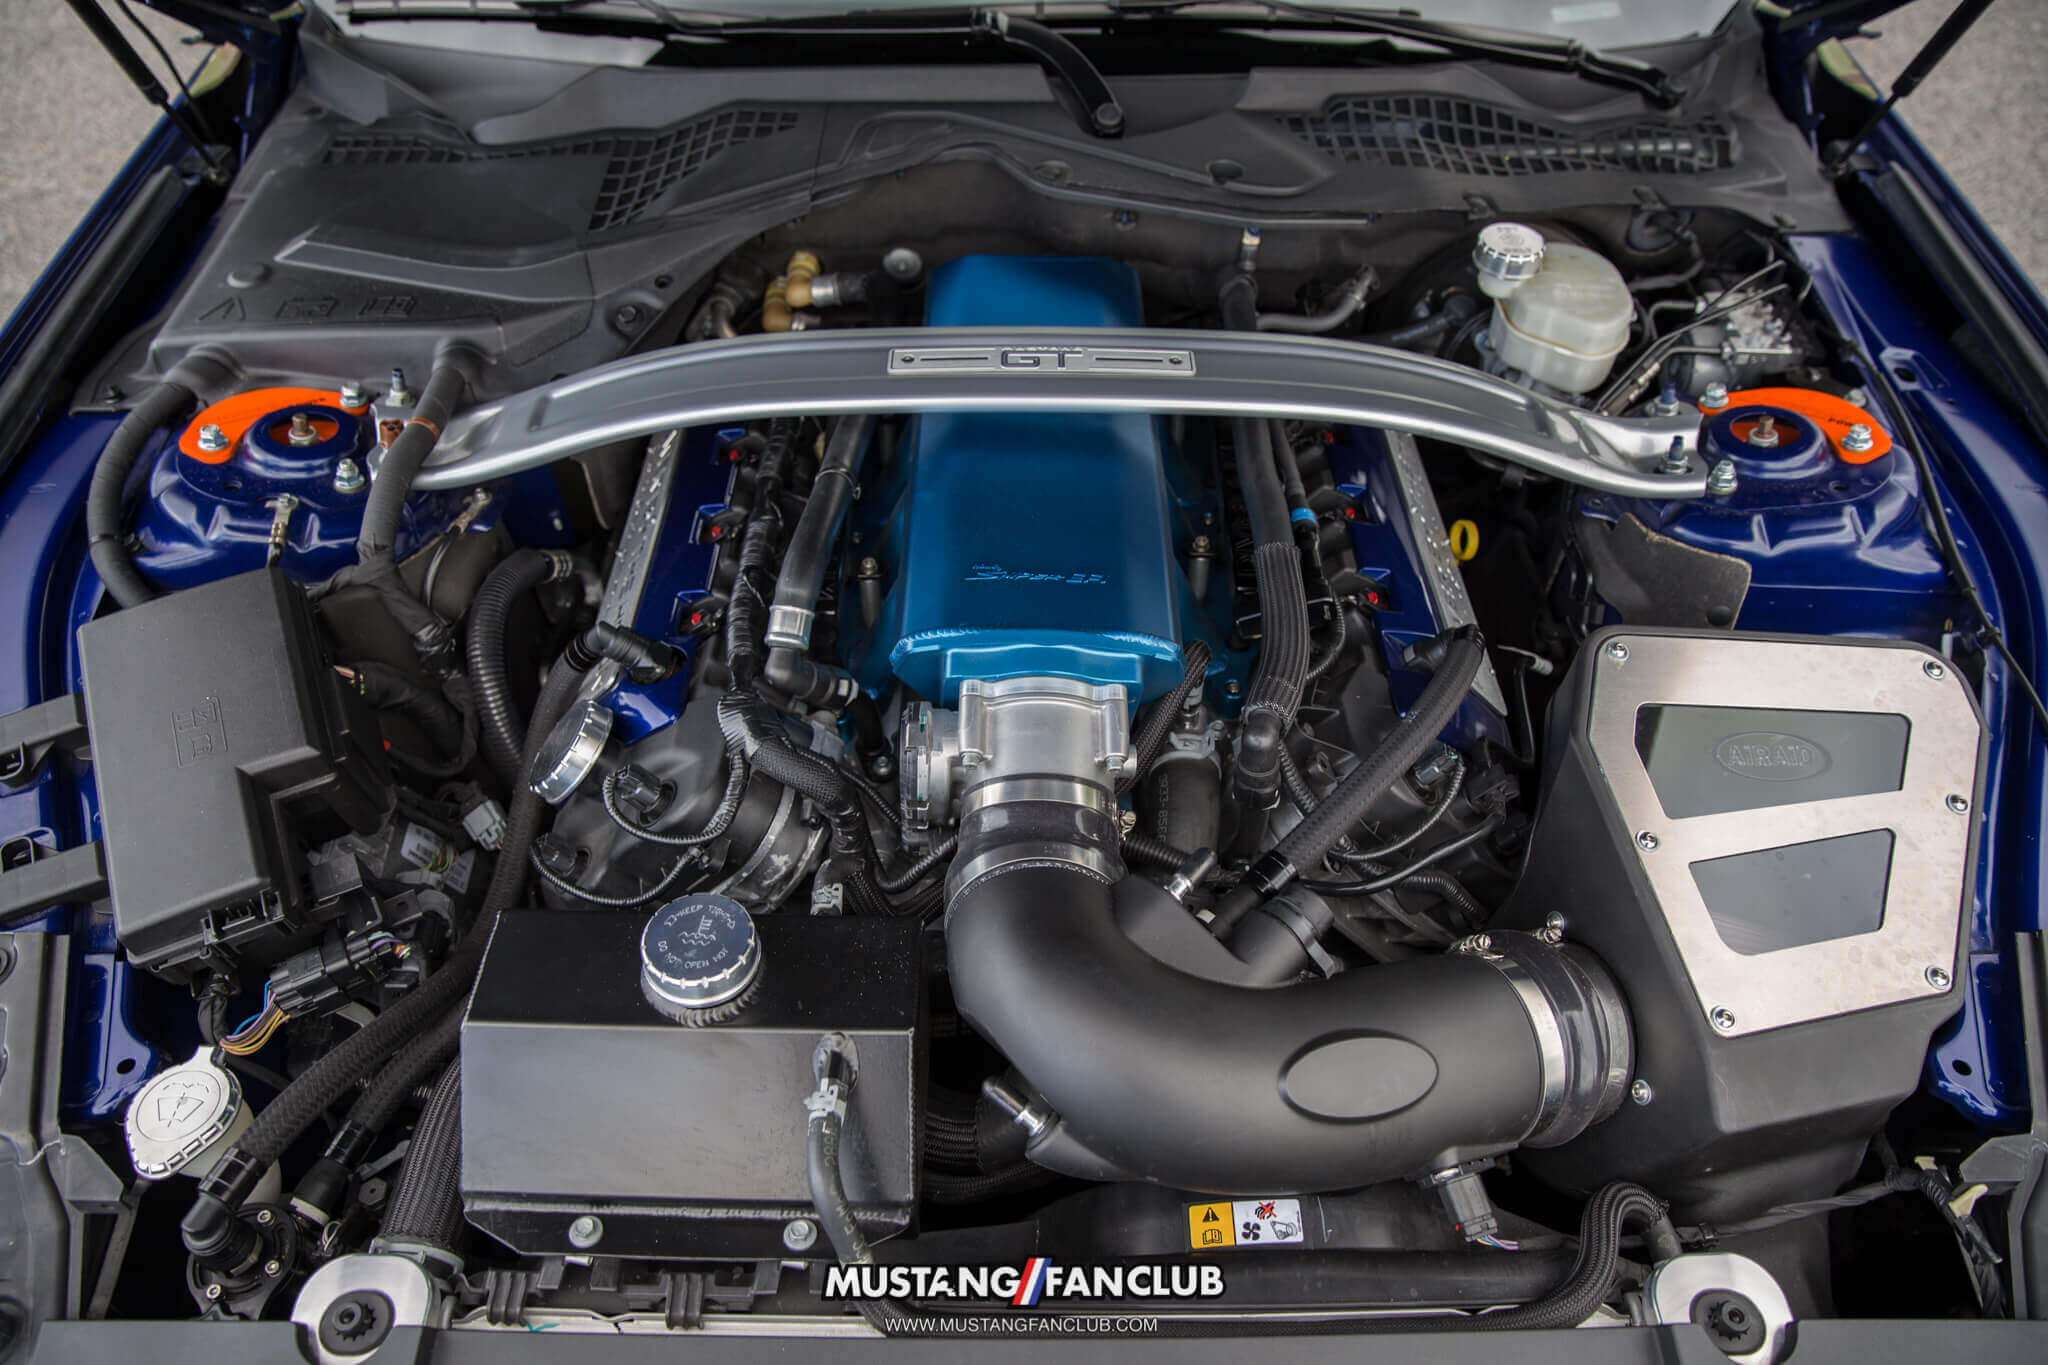 deep impact blue s550 mustang fan club roush performance front fascia camo wrap upr products steve gelles mustang week 2016 16' holley sniper intake manifold